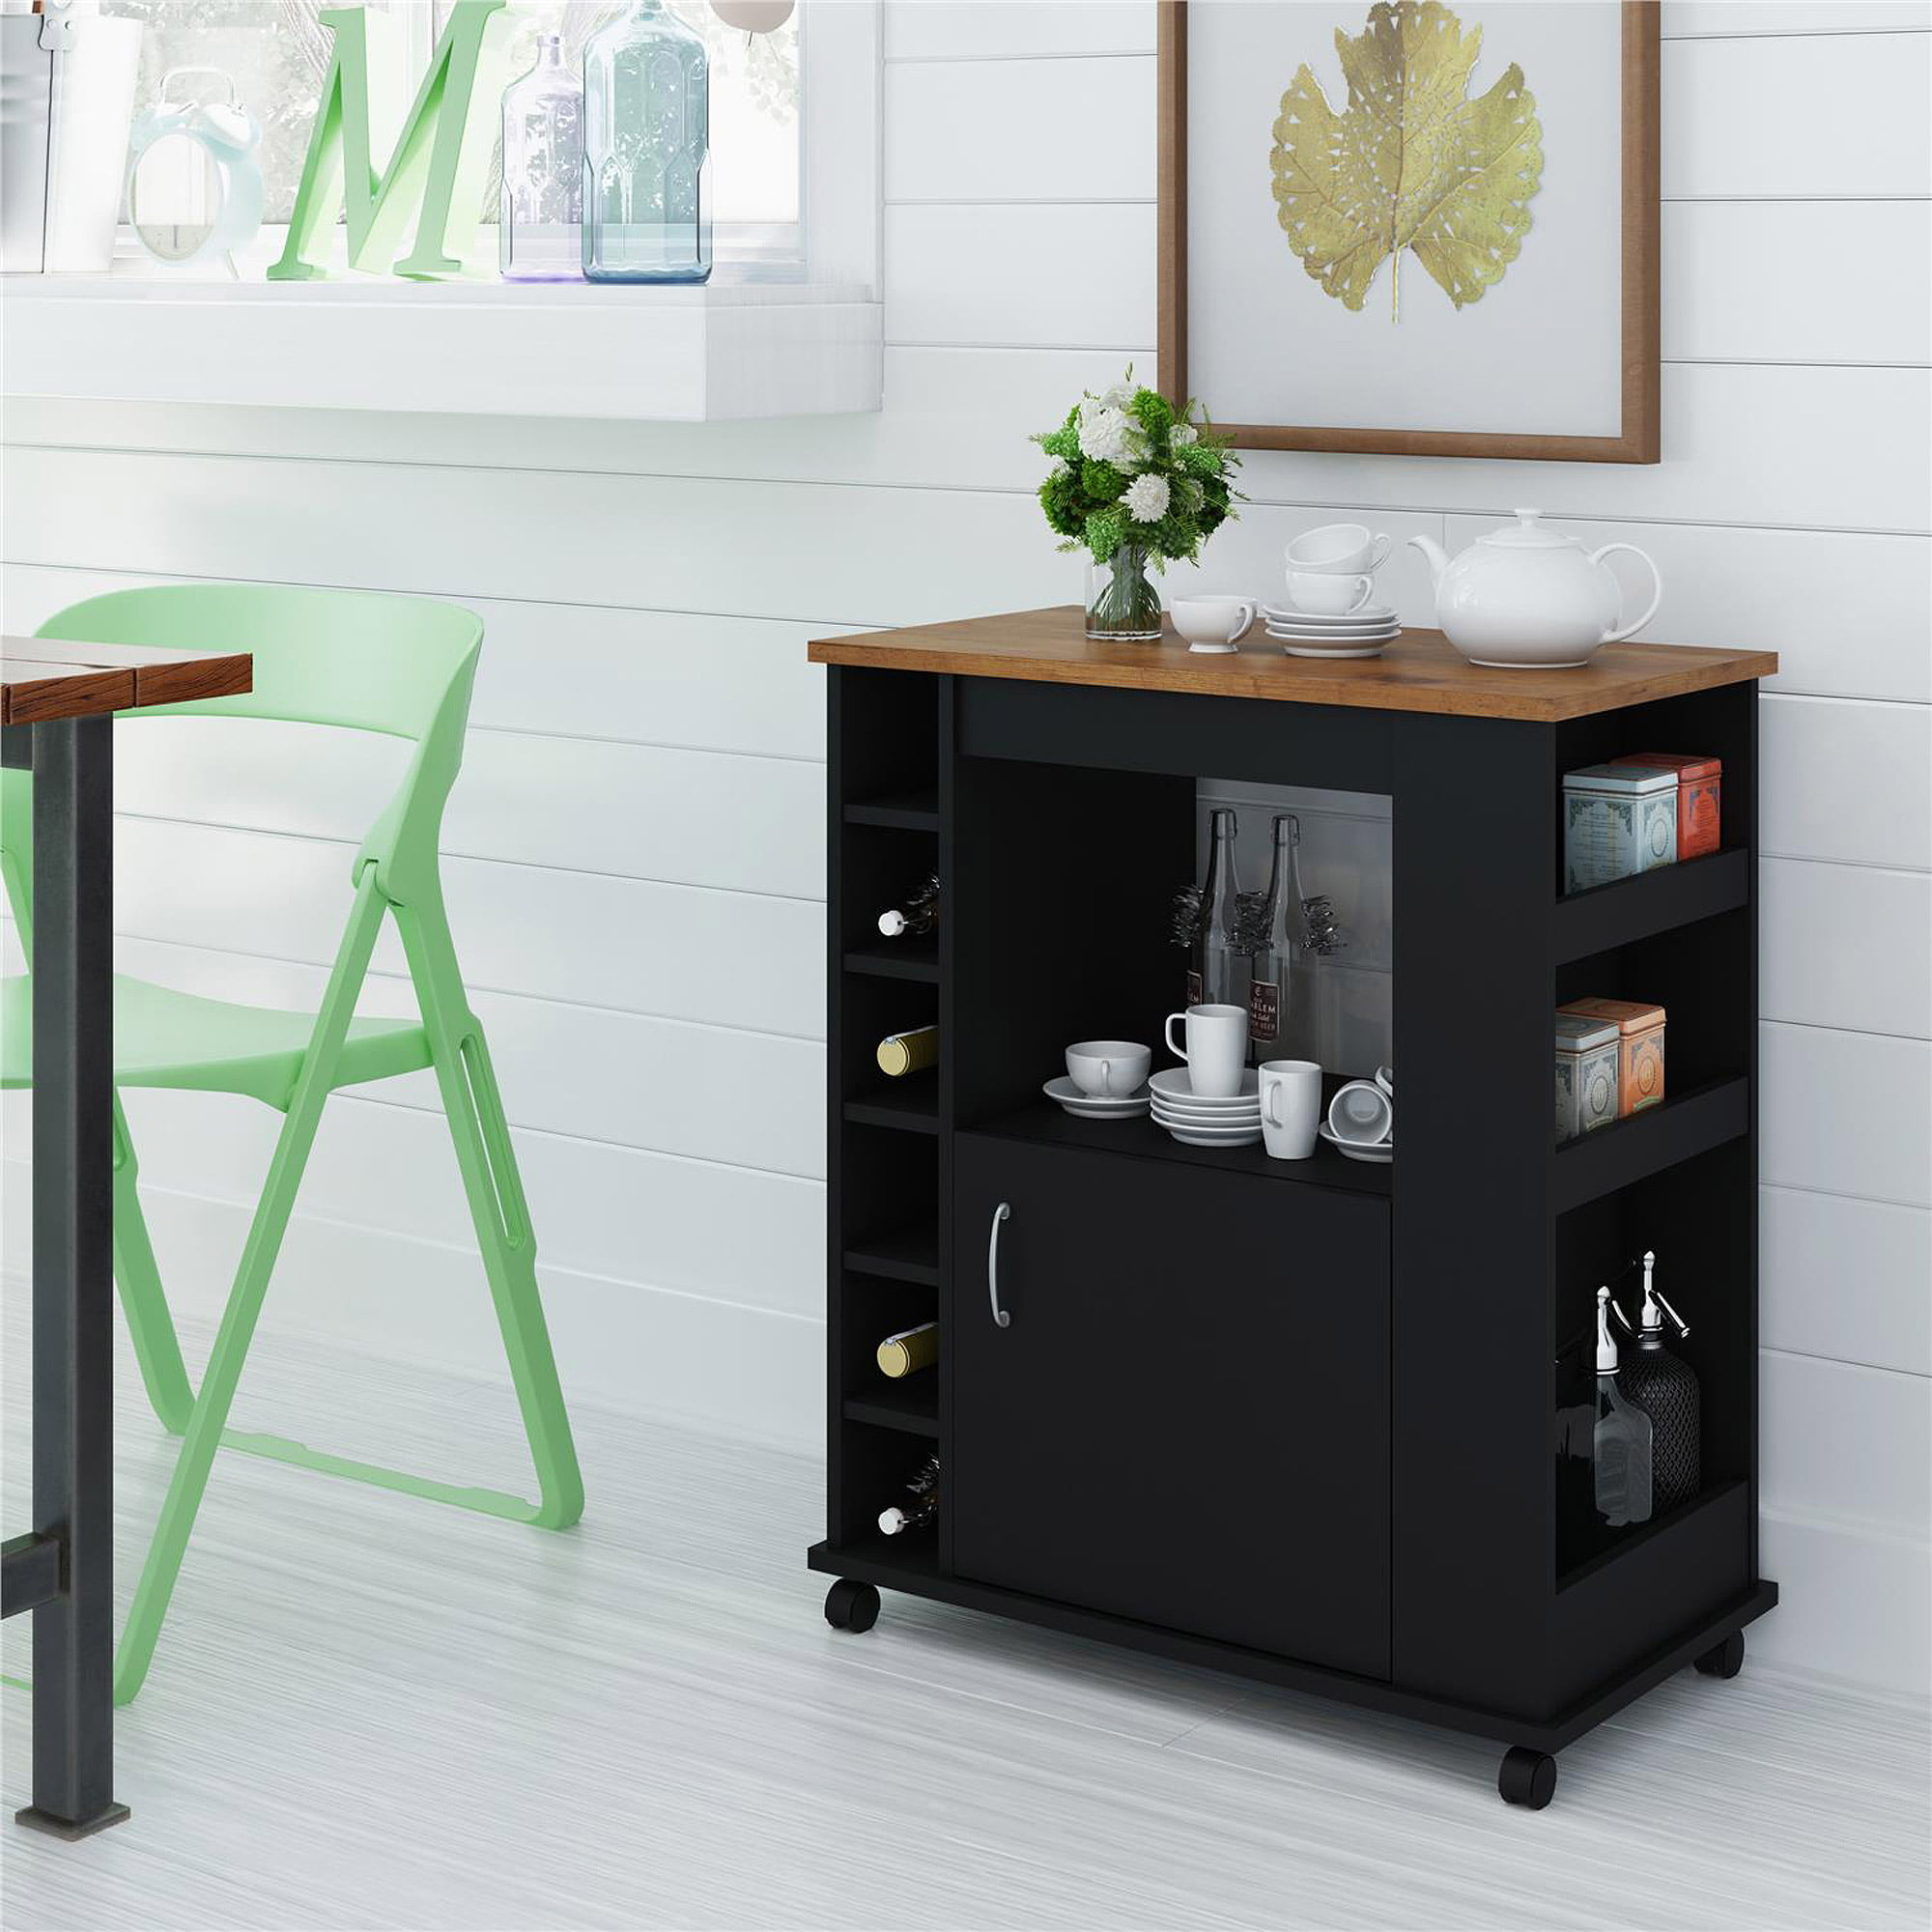 Kitchen Island Cart Black Home Dining Rolling Storage Cabinet